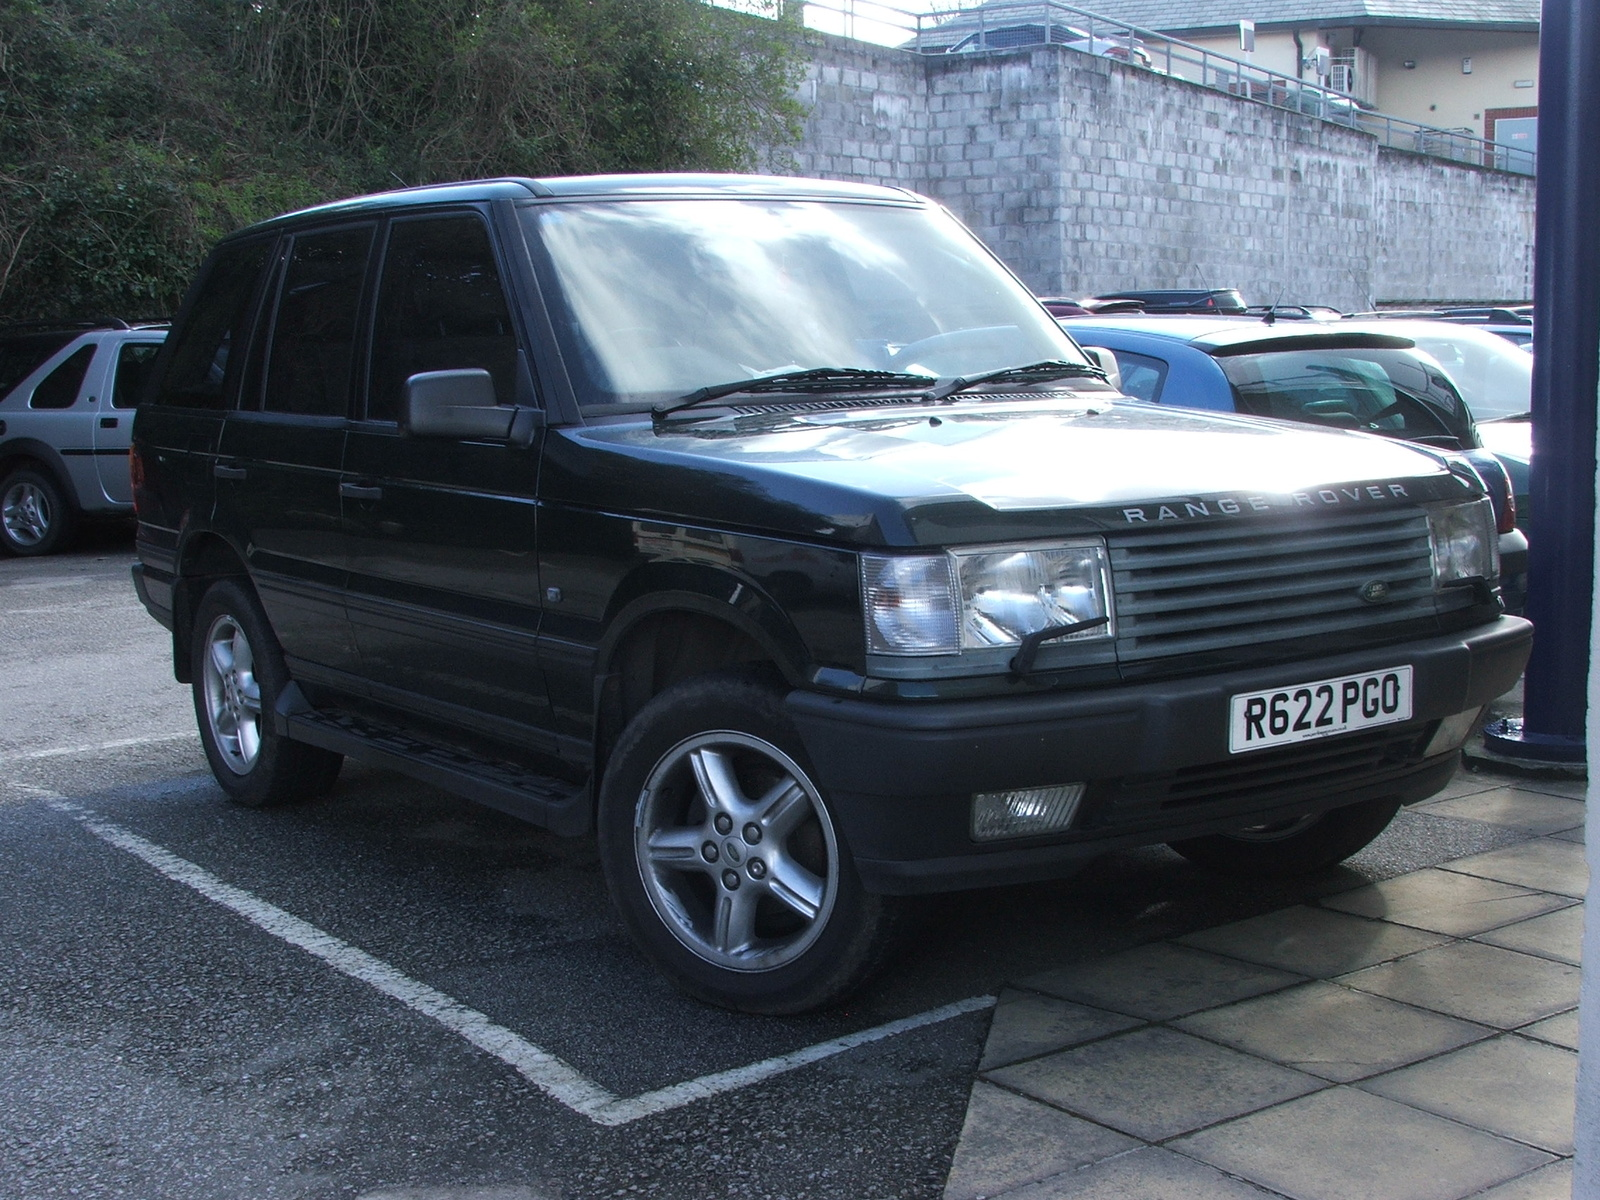 1997 Land Rover Range Rover Information and photos ZombieDrive